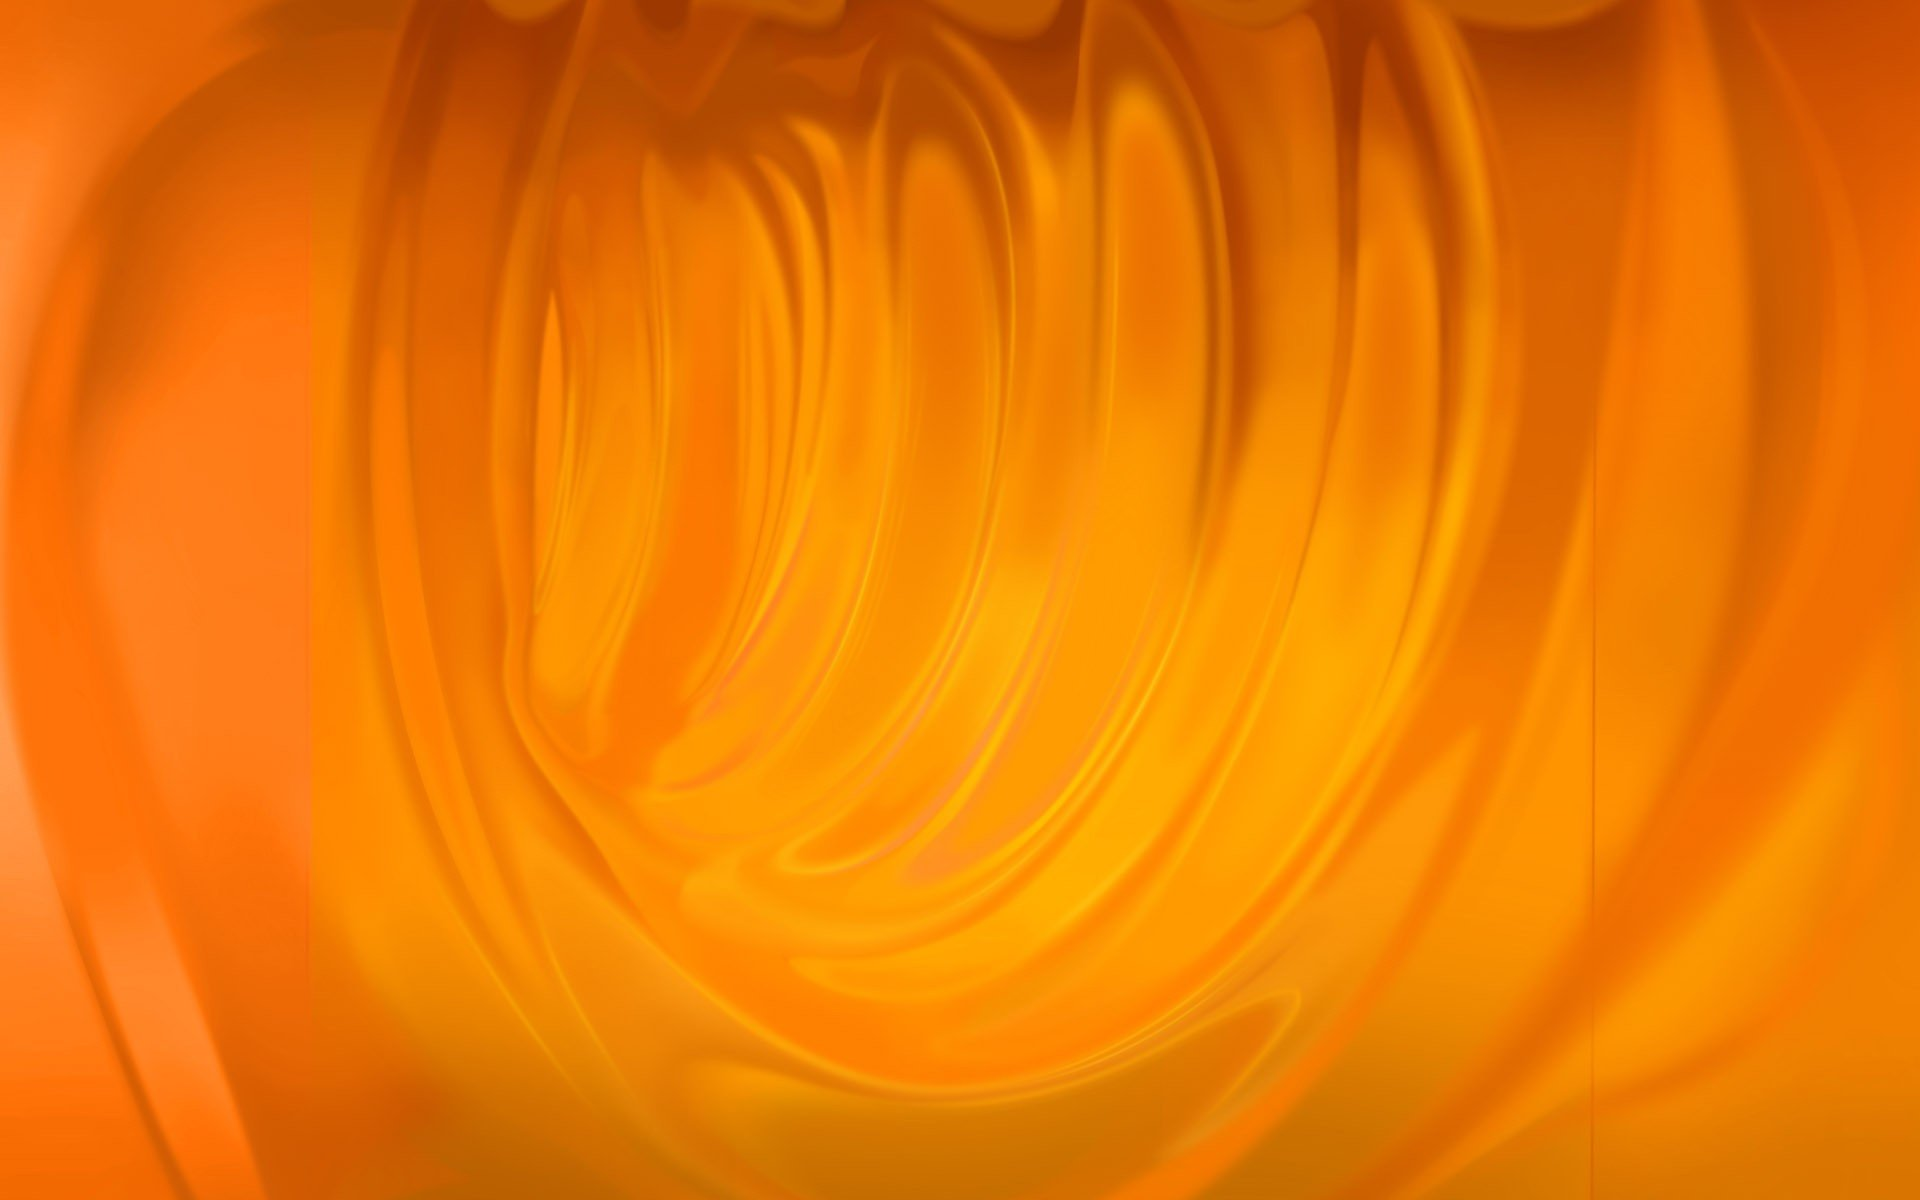 Wallpaper Orange Design : Abstract yellow orange design wallpaper